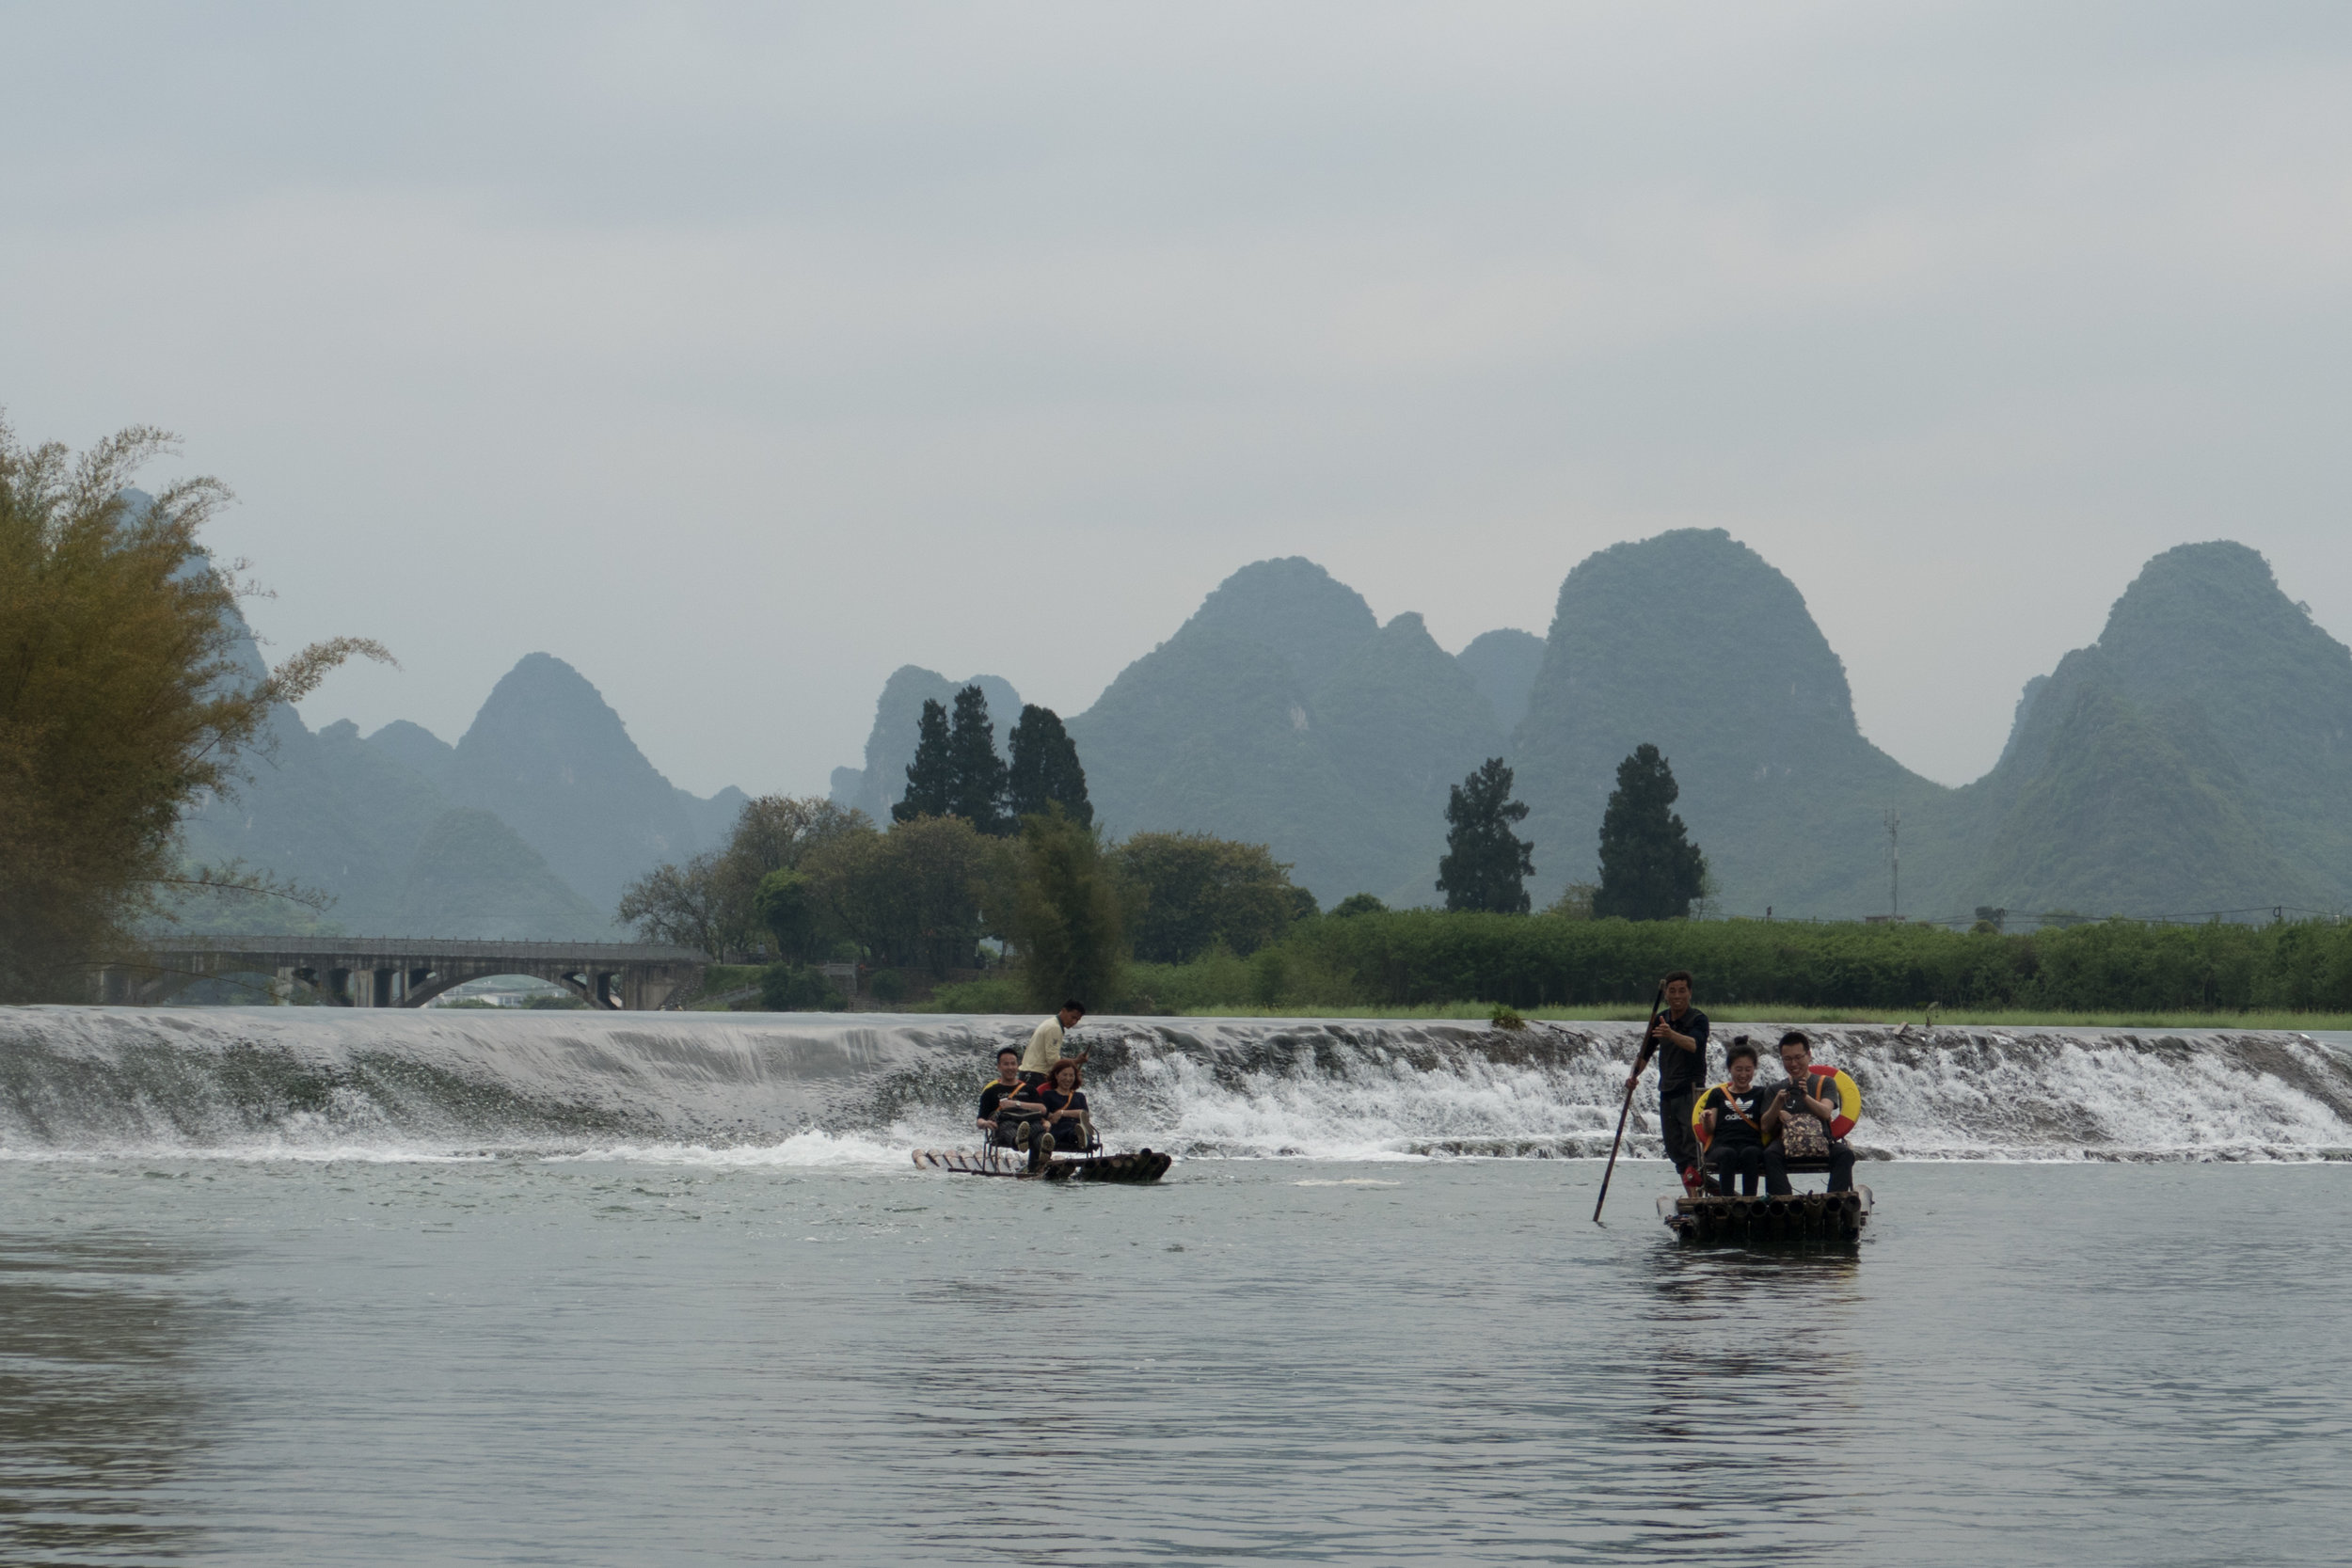 Rafts on the Yulong River with karsts in the background